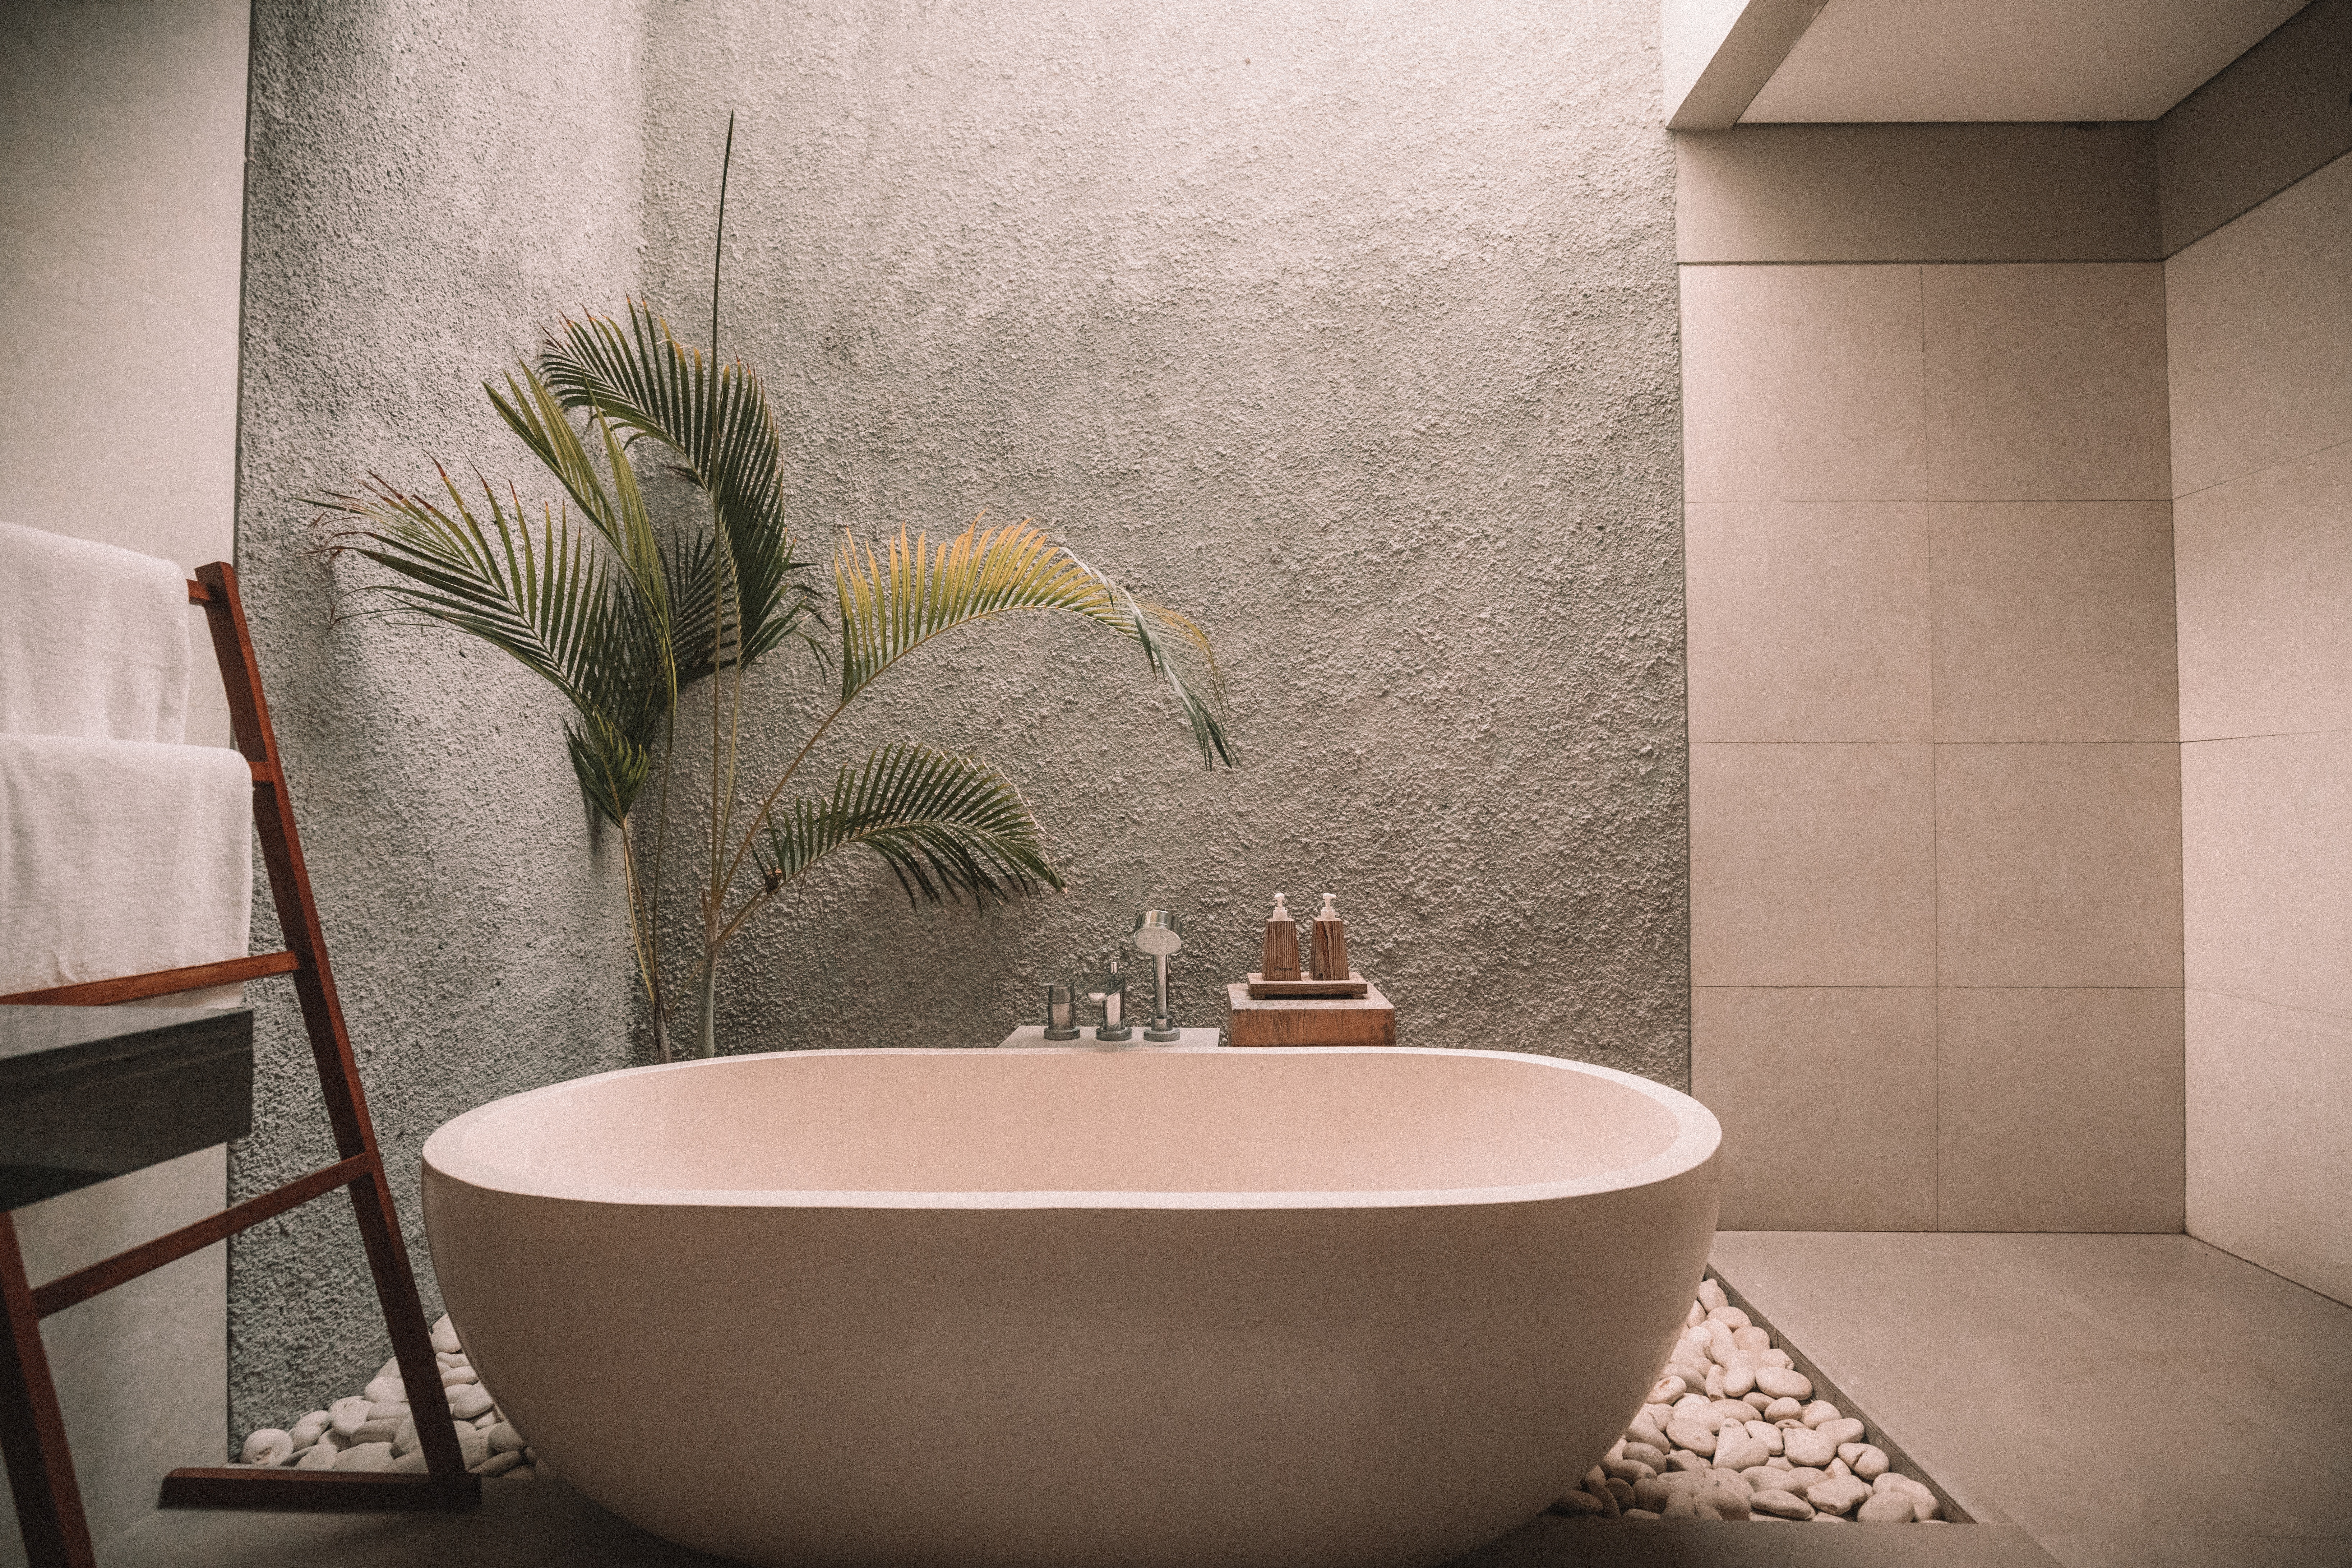 Garden Bath Tub In Bathroom